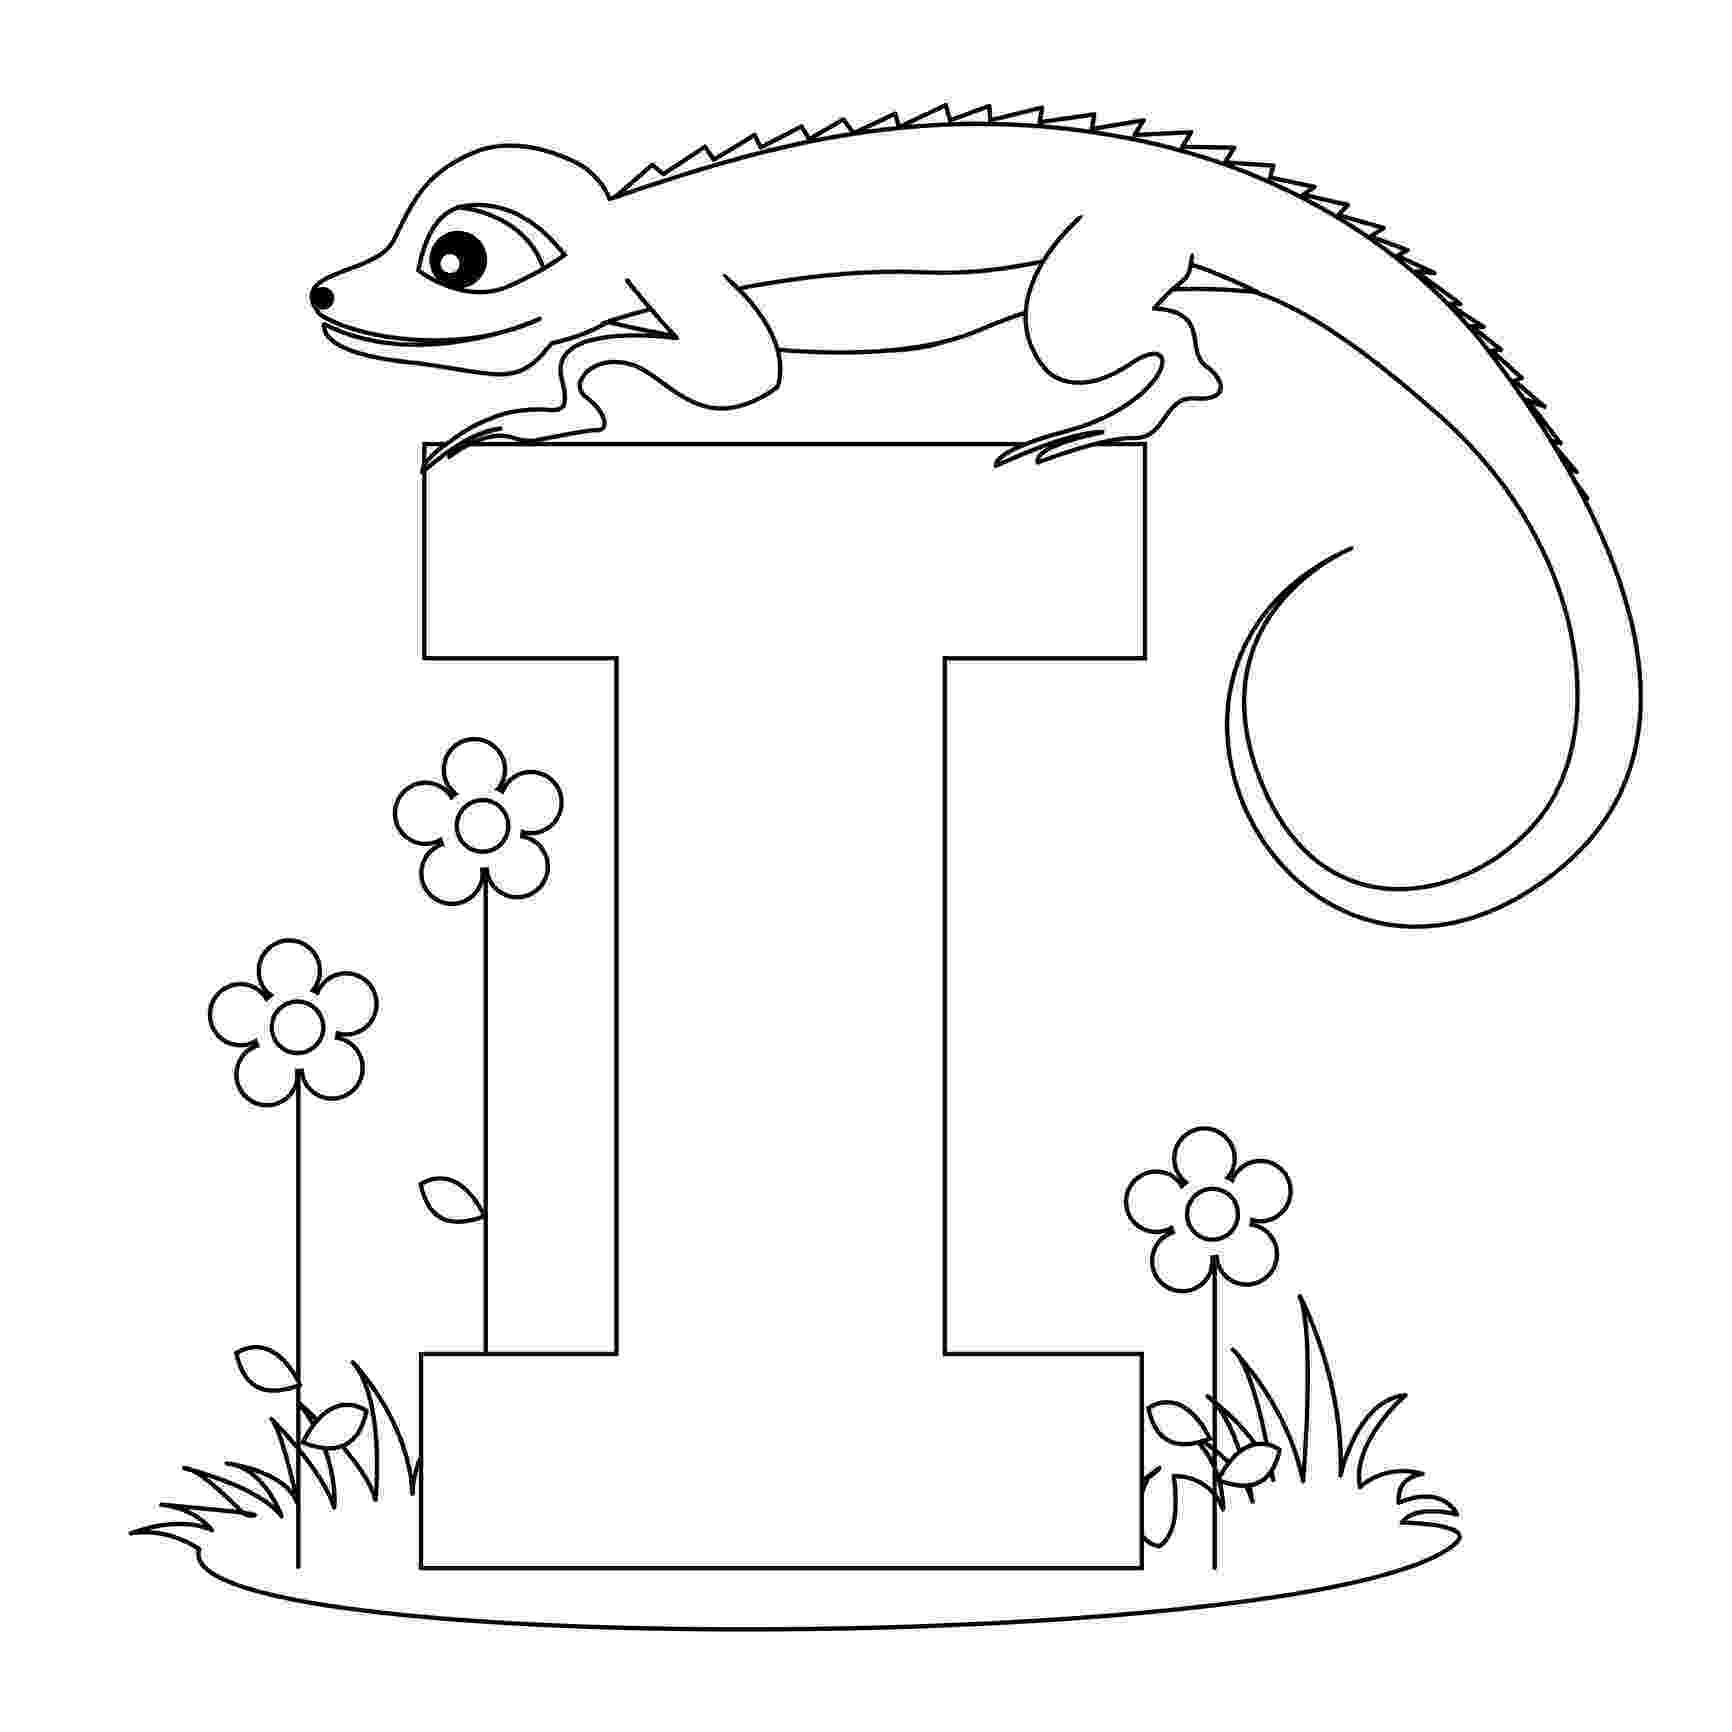 printable coloring book letters free printable alphabet coloring pages for kids best letters printable book coloring 1 1